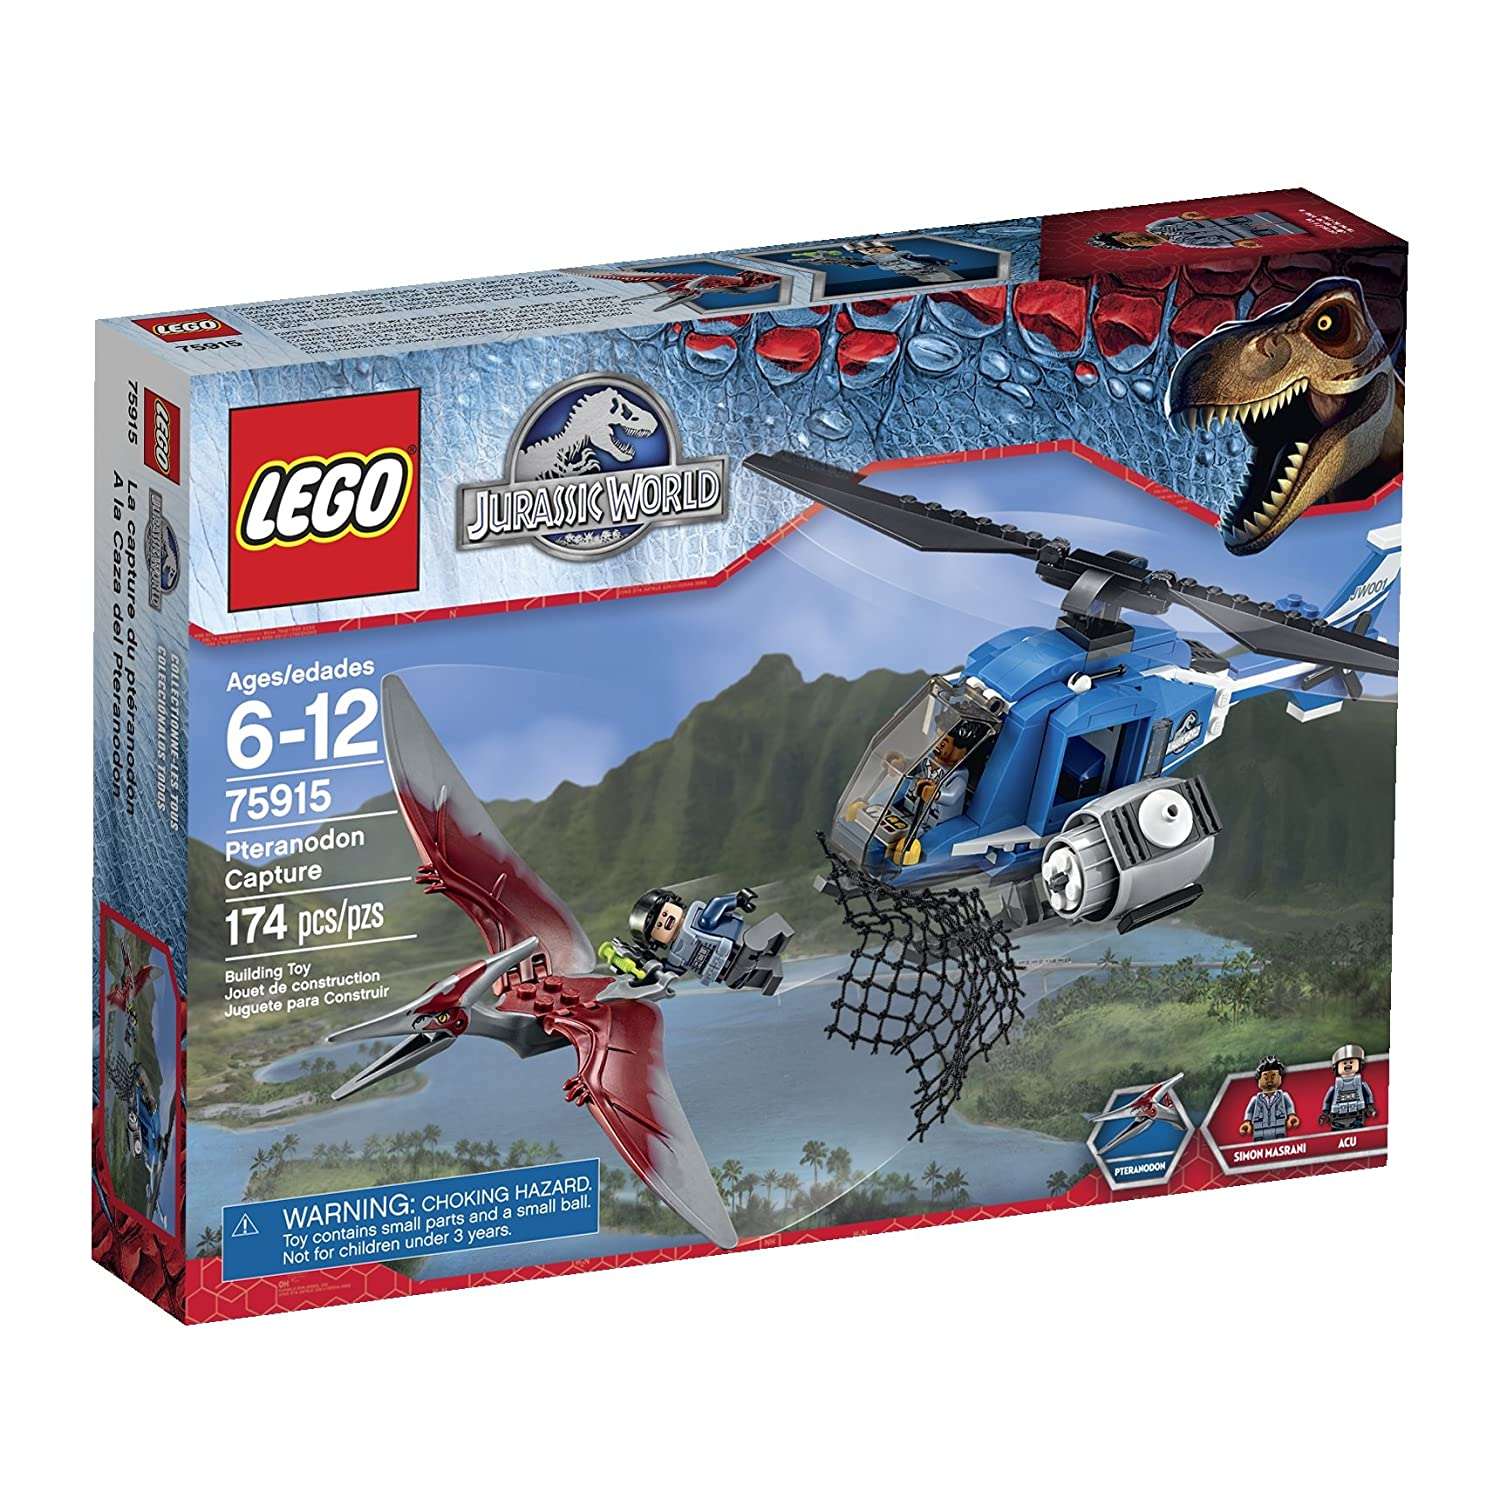 LEG- Jurassic-World-Pteranodon-Capture-75915-Building-Kit